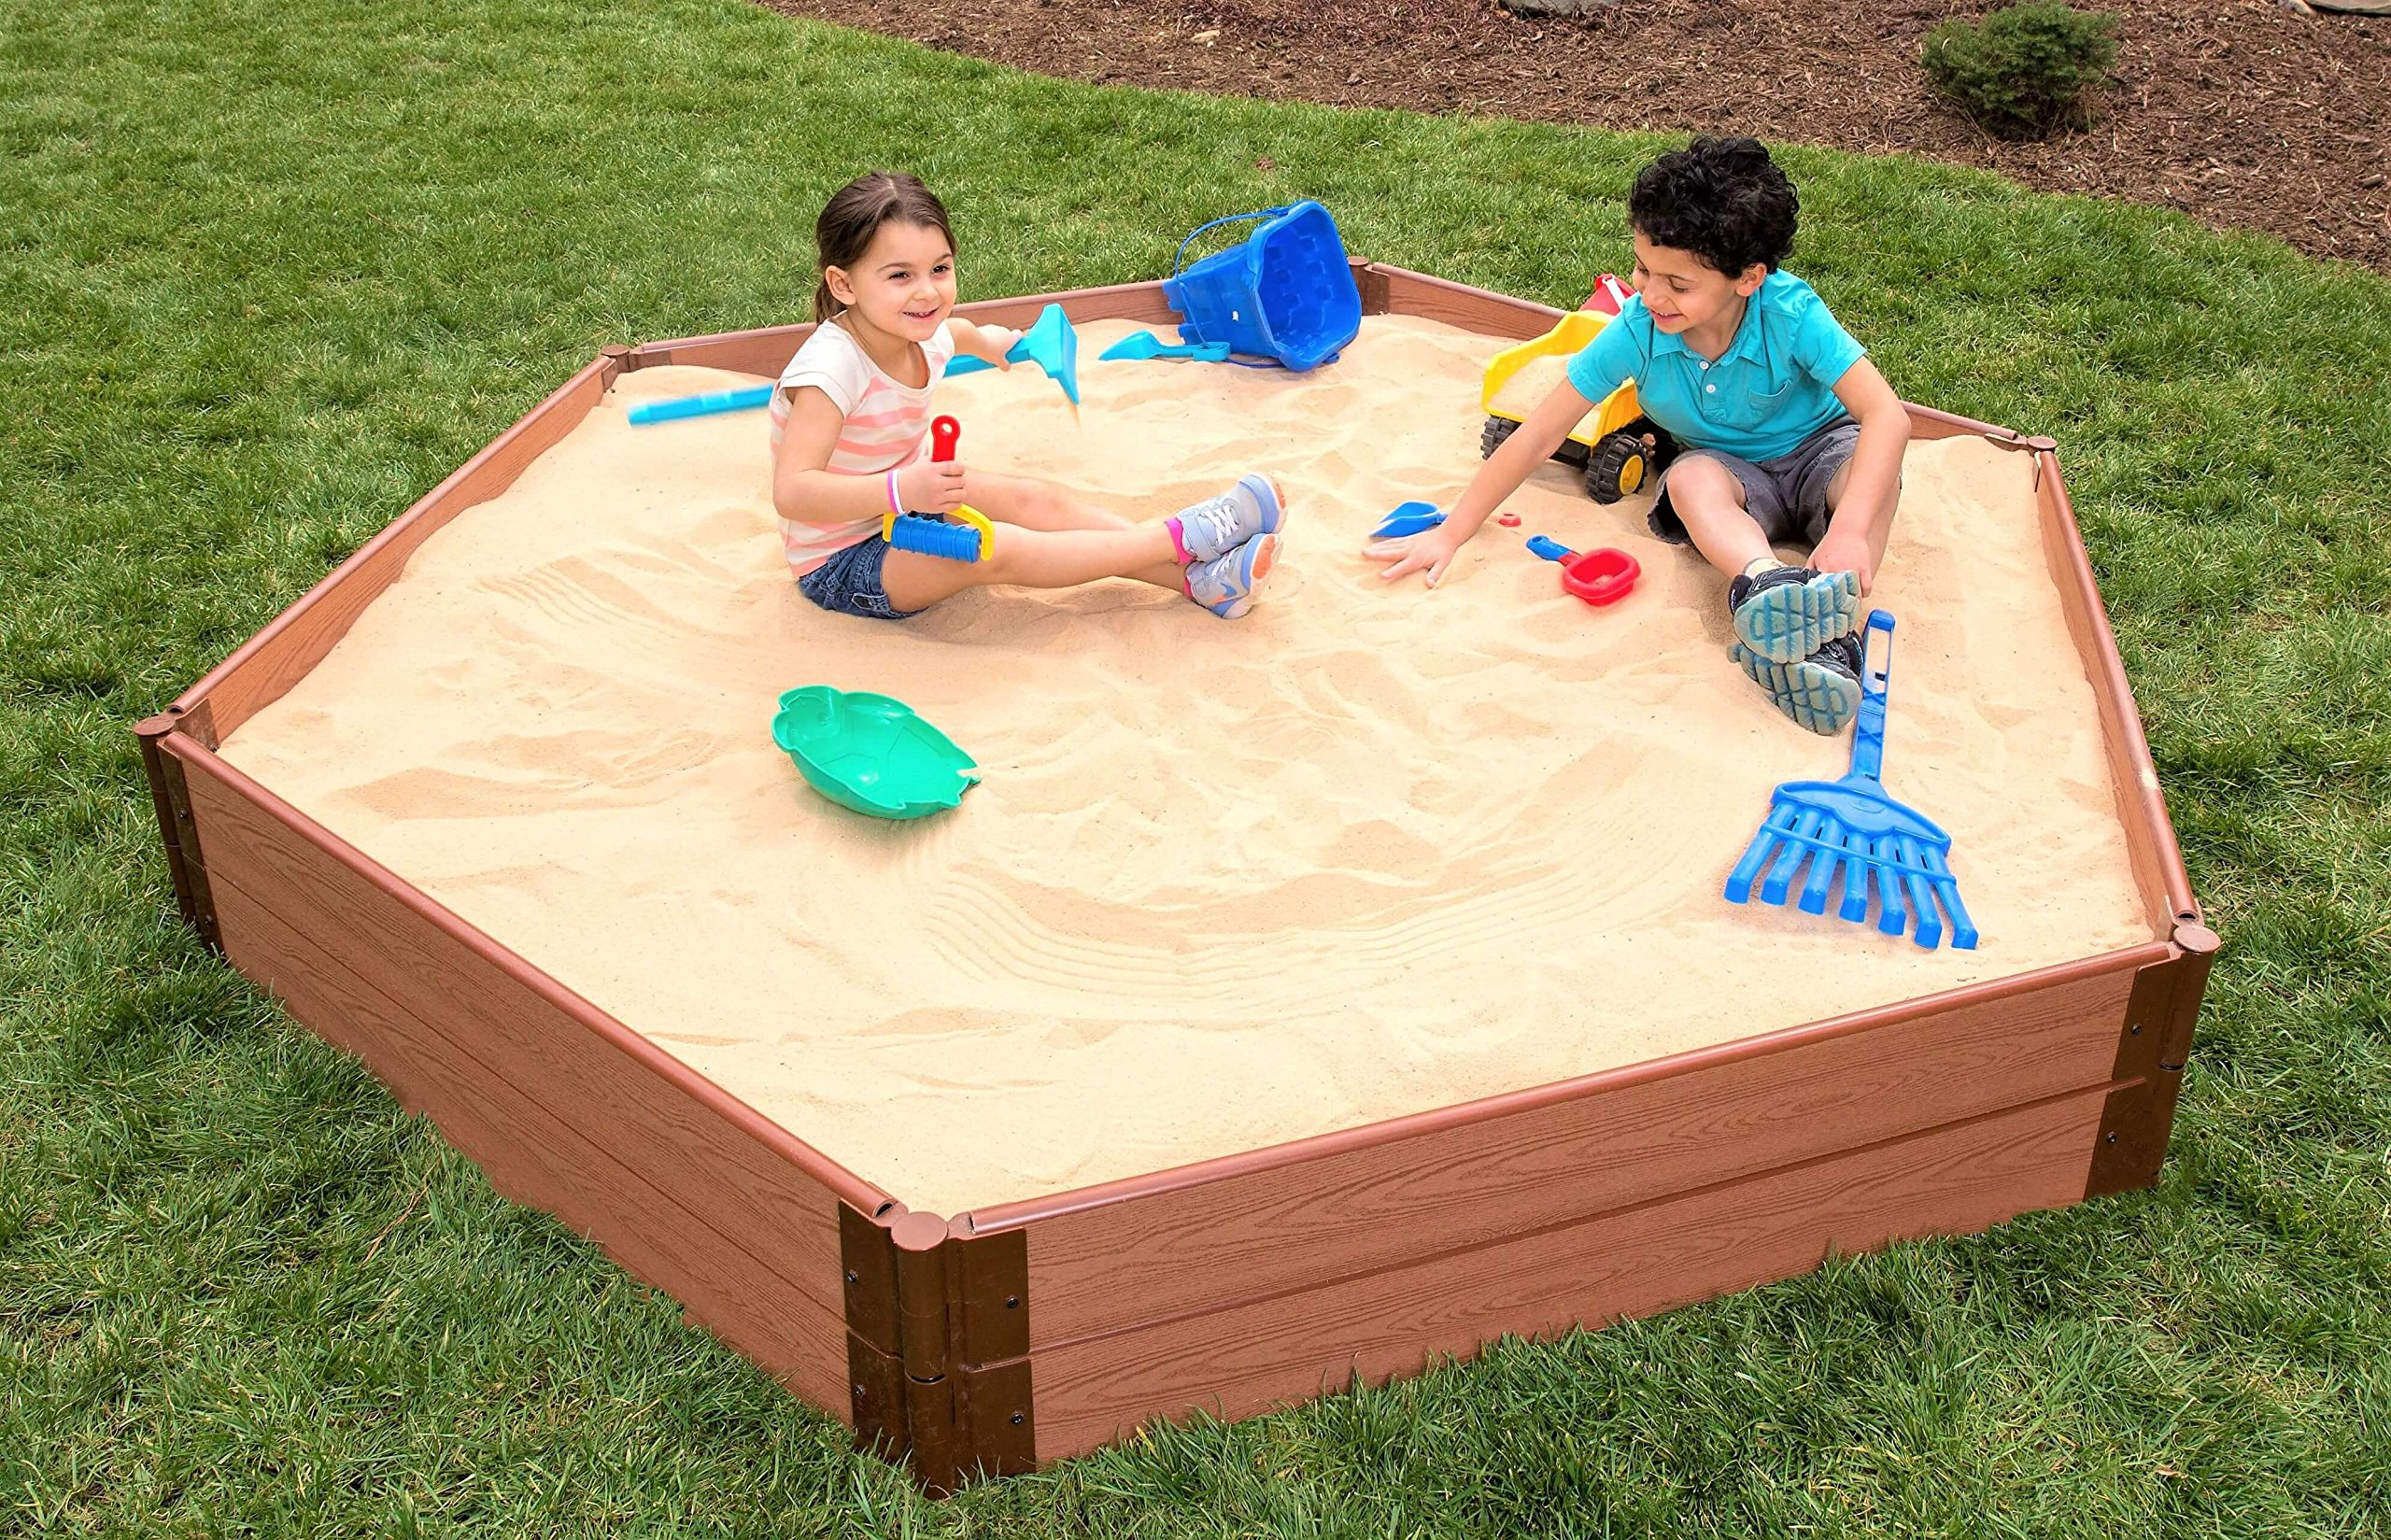 Frame It All 300001228 Sandbox Kit with Collapsible Cover by Frame It All (Image #3)